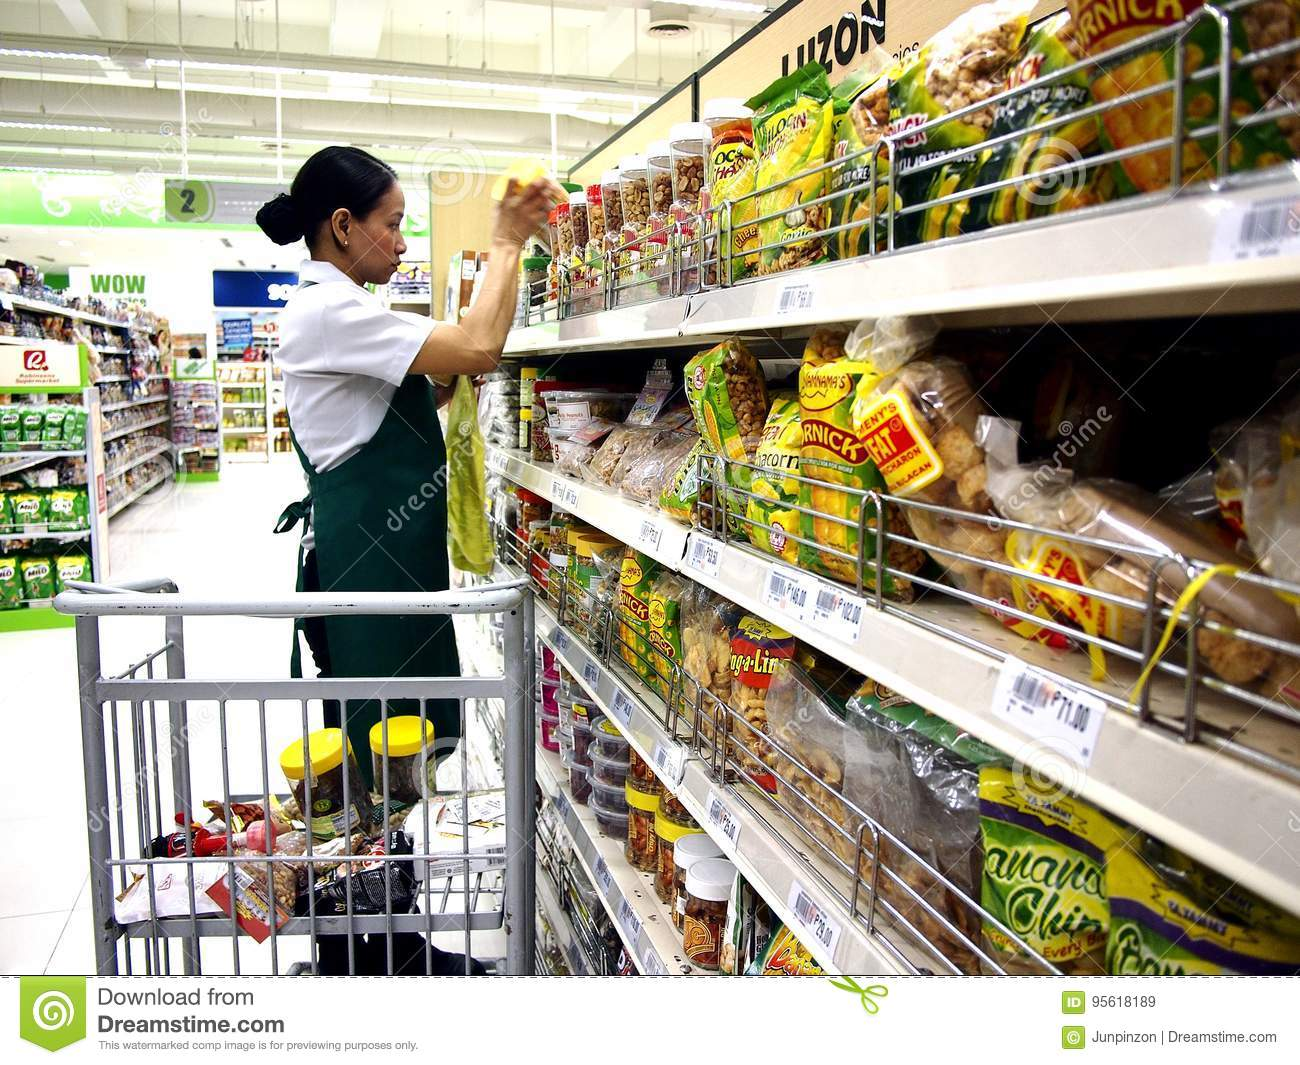 A Grocery Store Worker Refills The Shelves With New Stocks Of